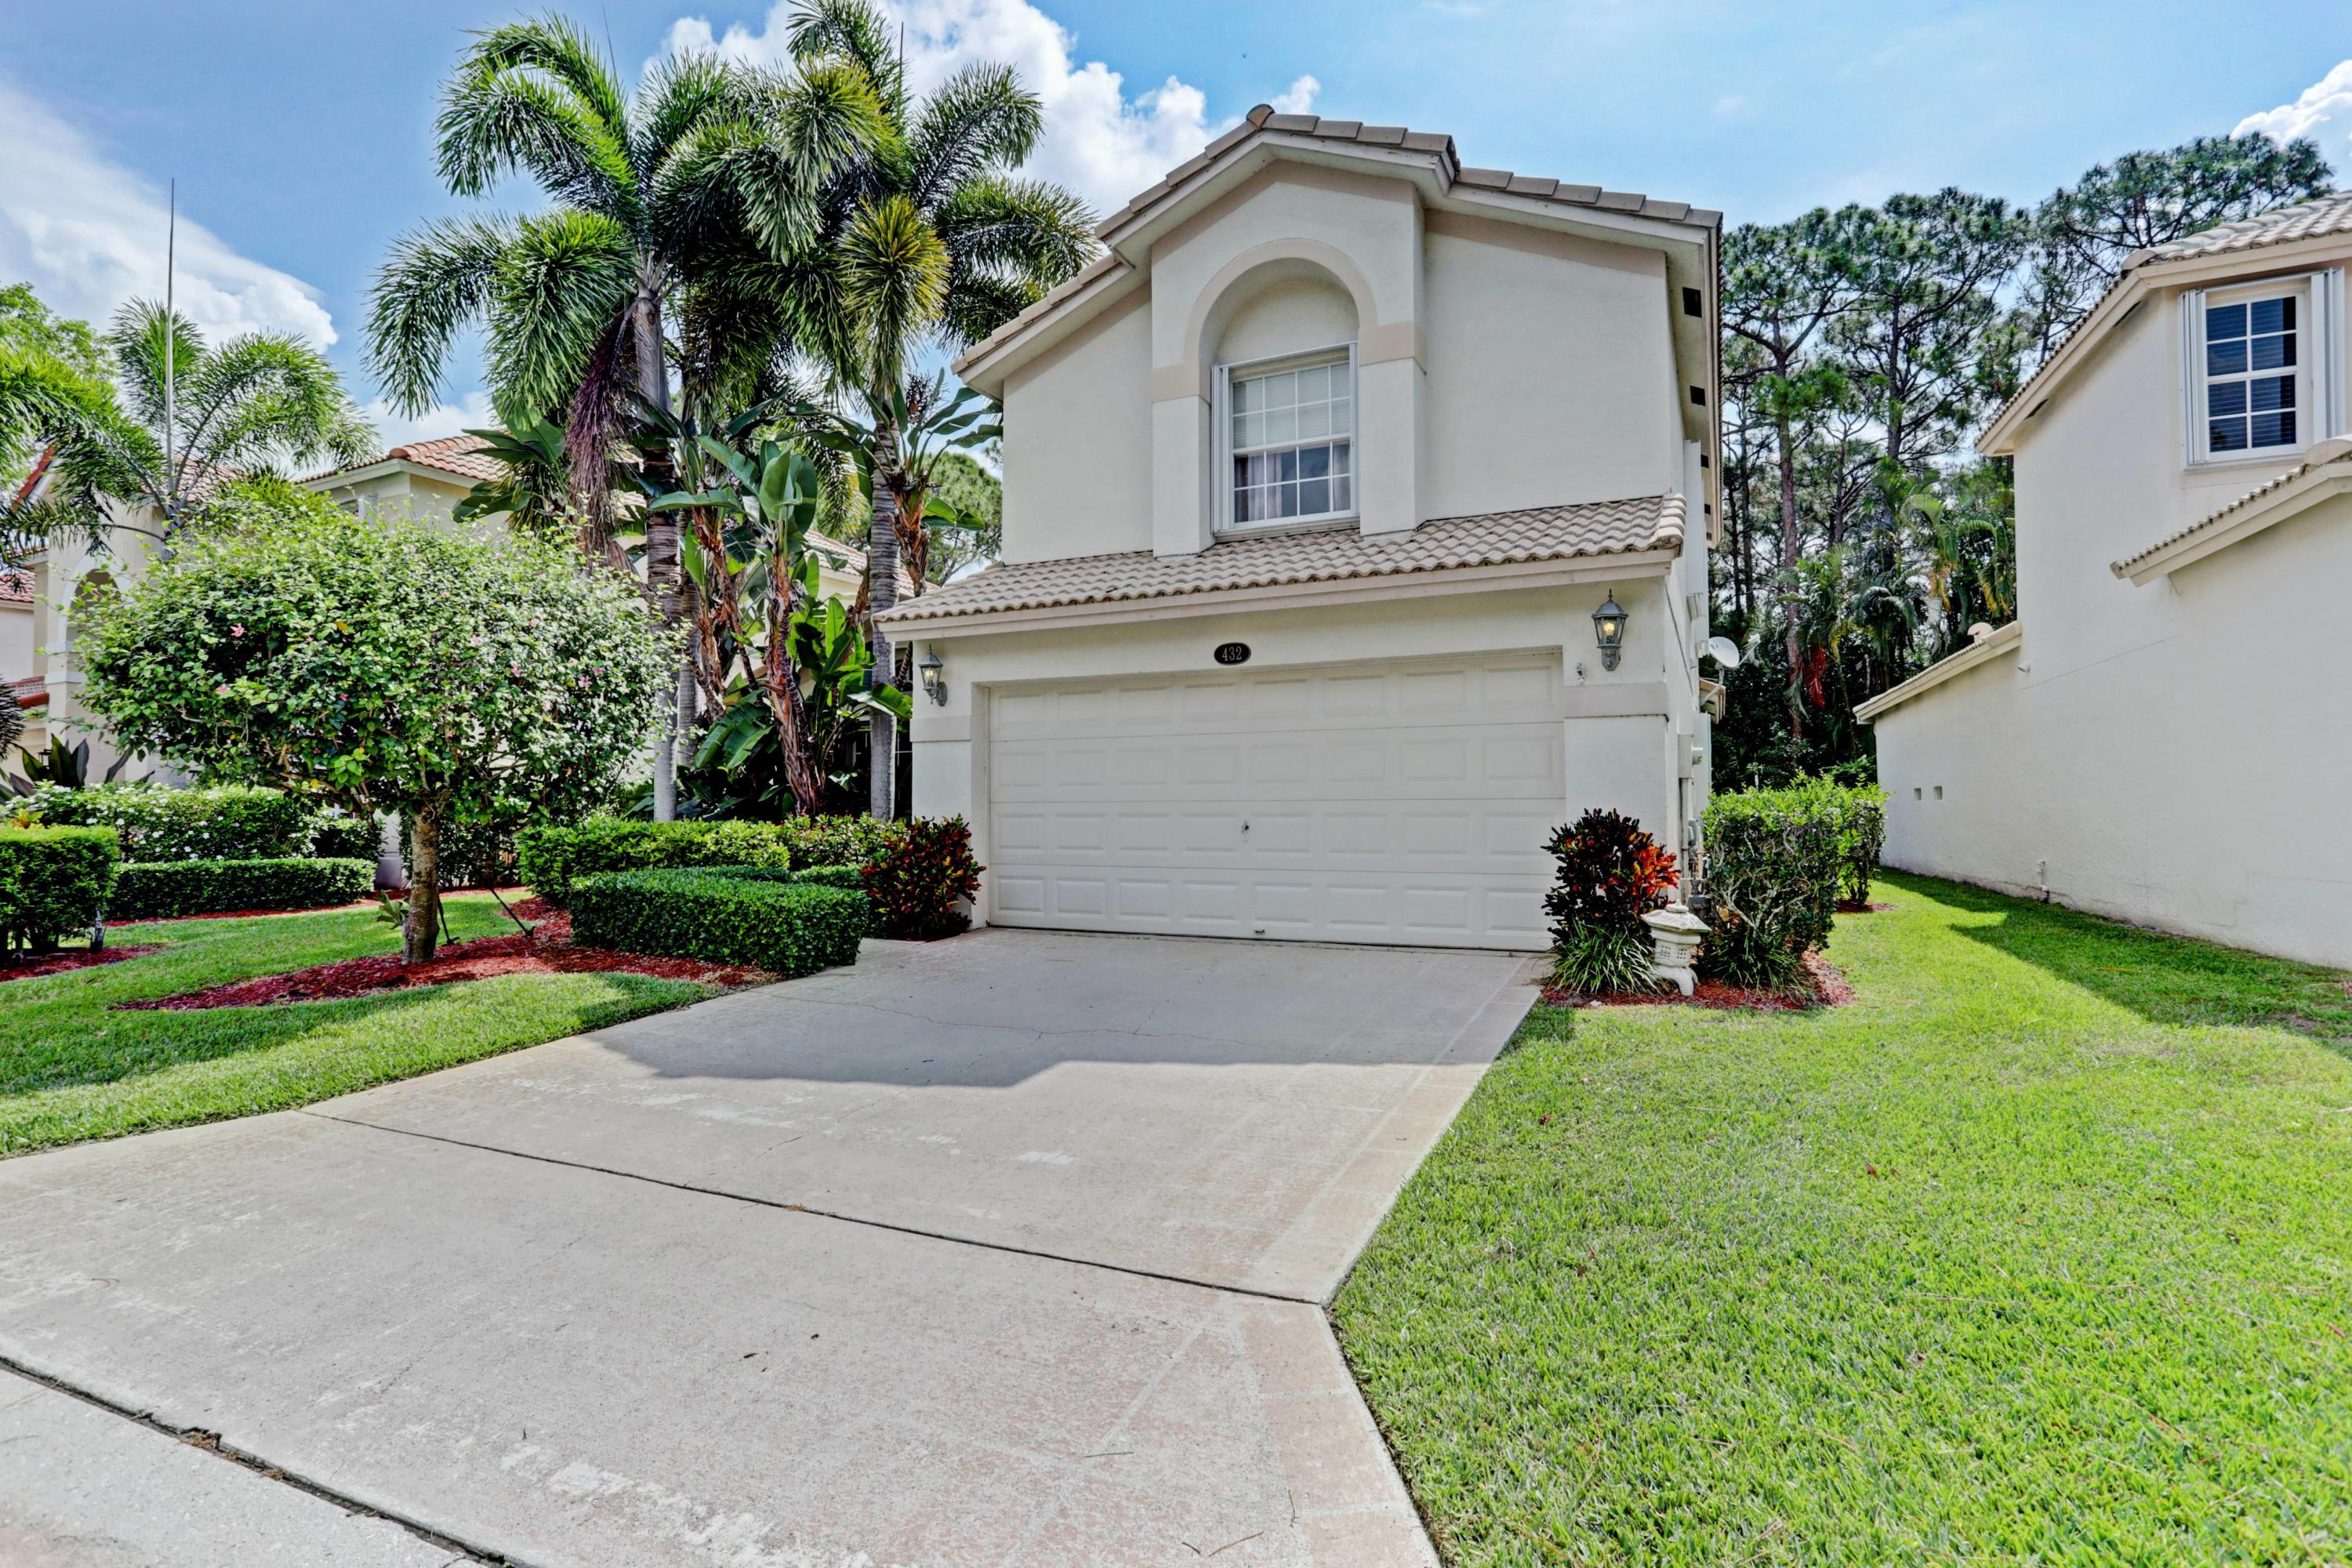 Home for sale in BENT TREE PH 2 Palm Beach Gardens Florida